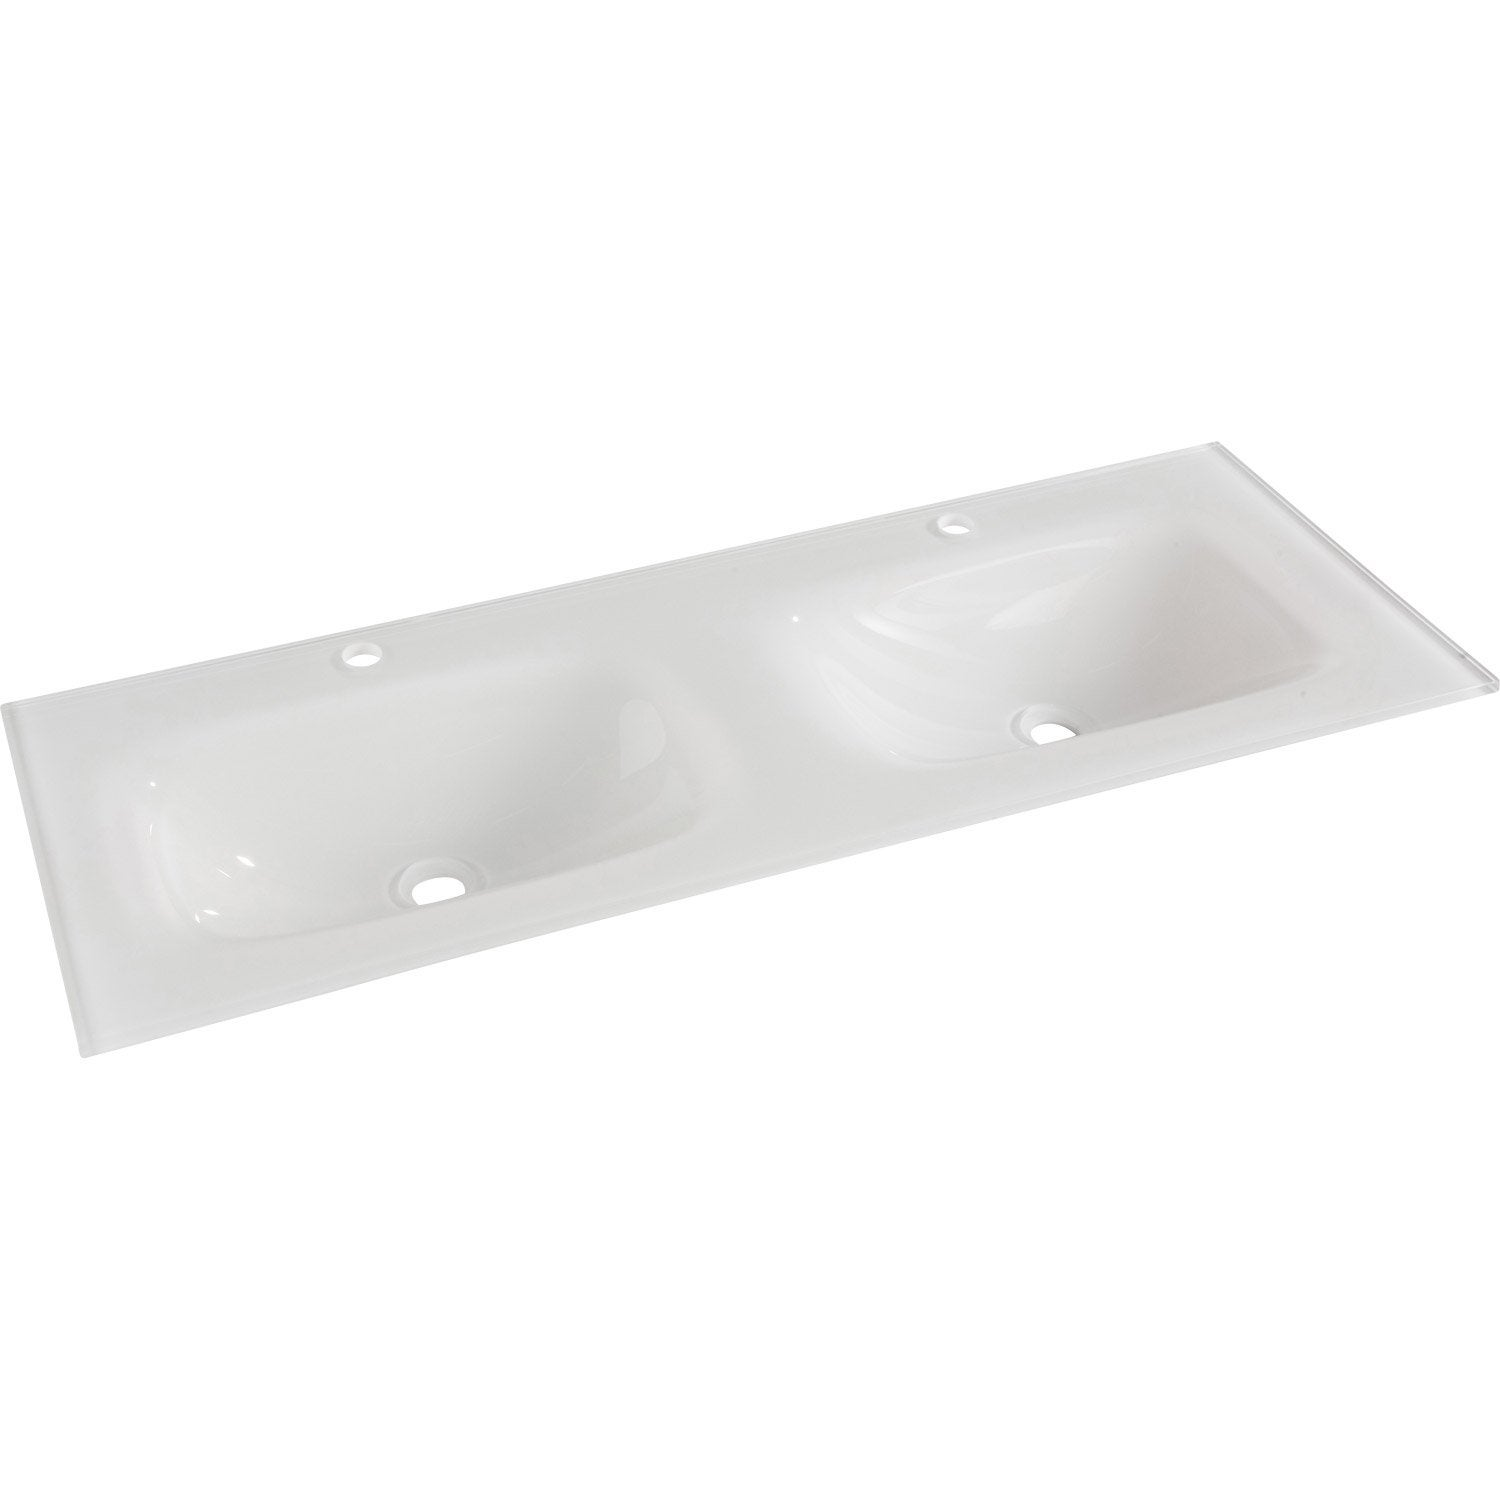 Plan vasque double opale verre tremp 121 0 cm leroy merlin for Vasque salle de bain a encastrer